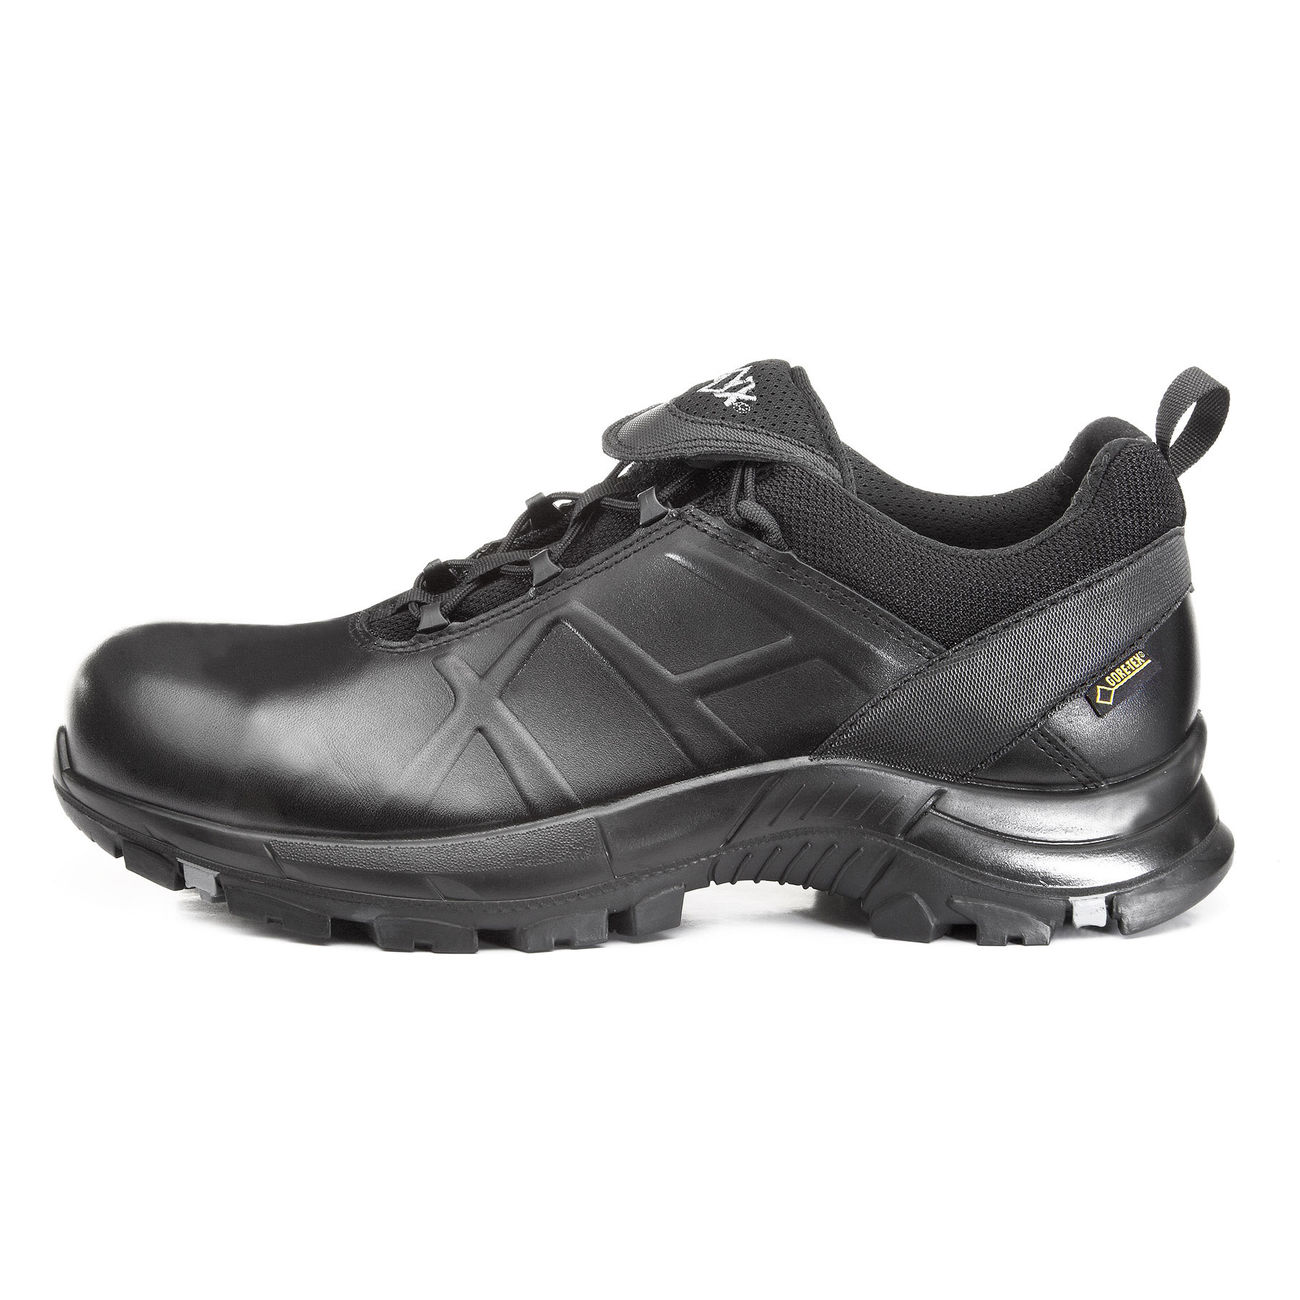 Haix Sicherhheitsschuh Black Eagle Safety 50 Low Leder schwarz 5